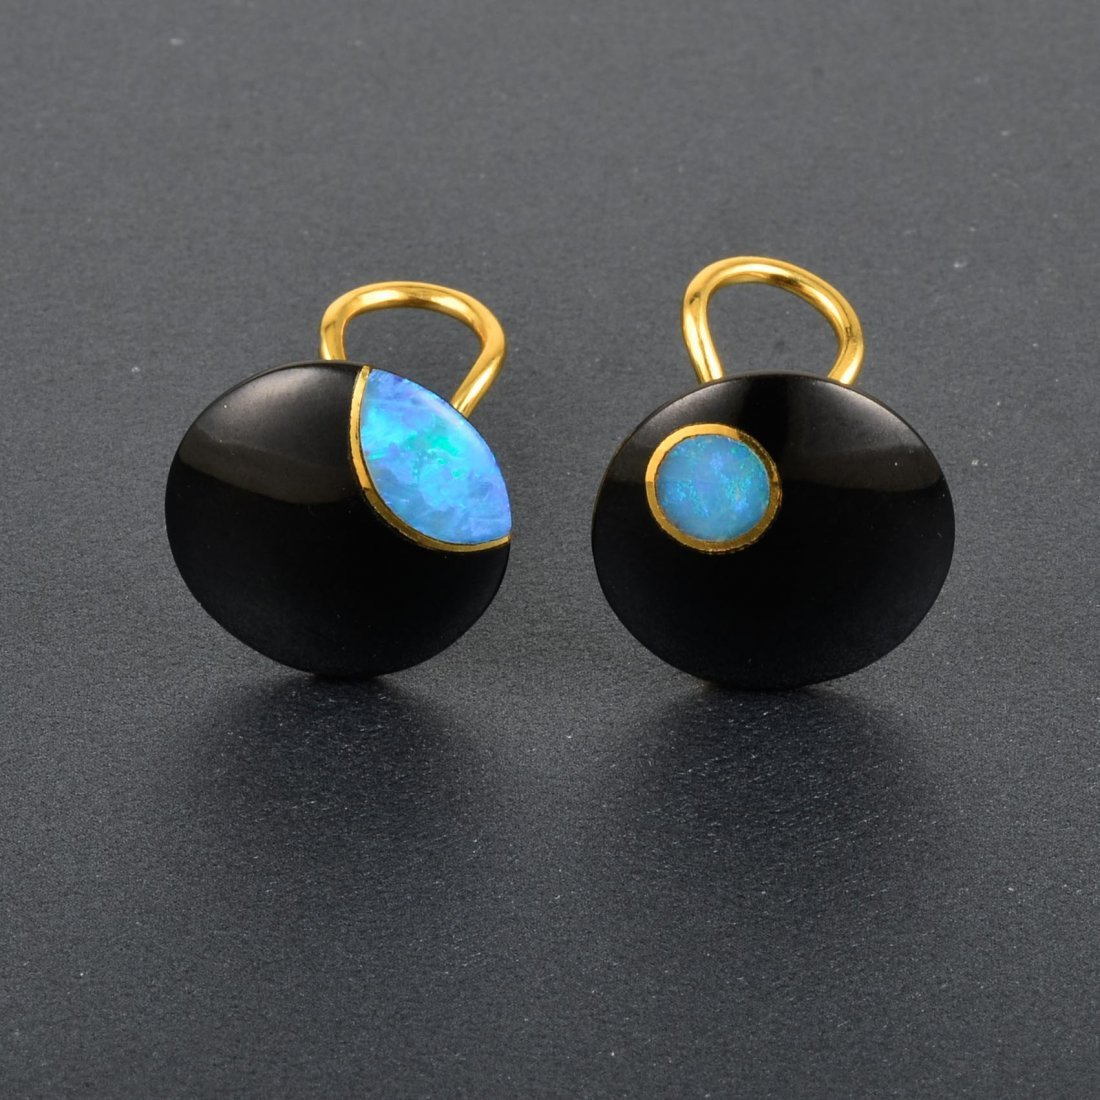 Tiffany & Co., 18K YG Onyx and Opal Earrings